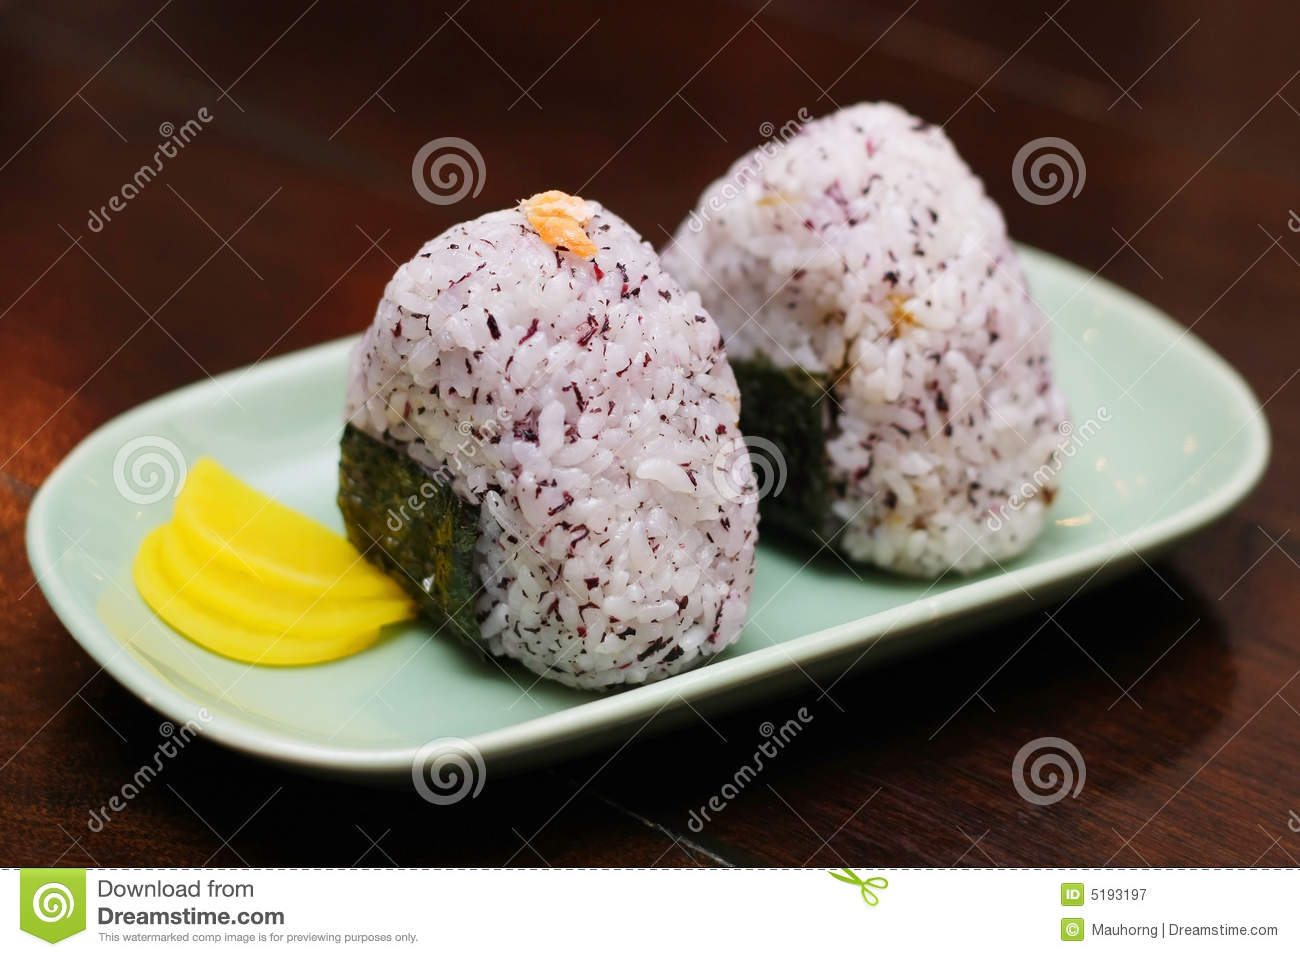 Two Japanese rice balls put on a plate.